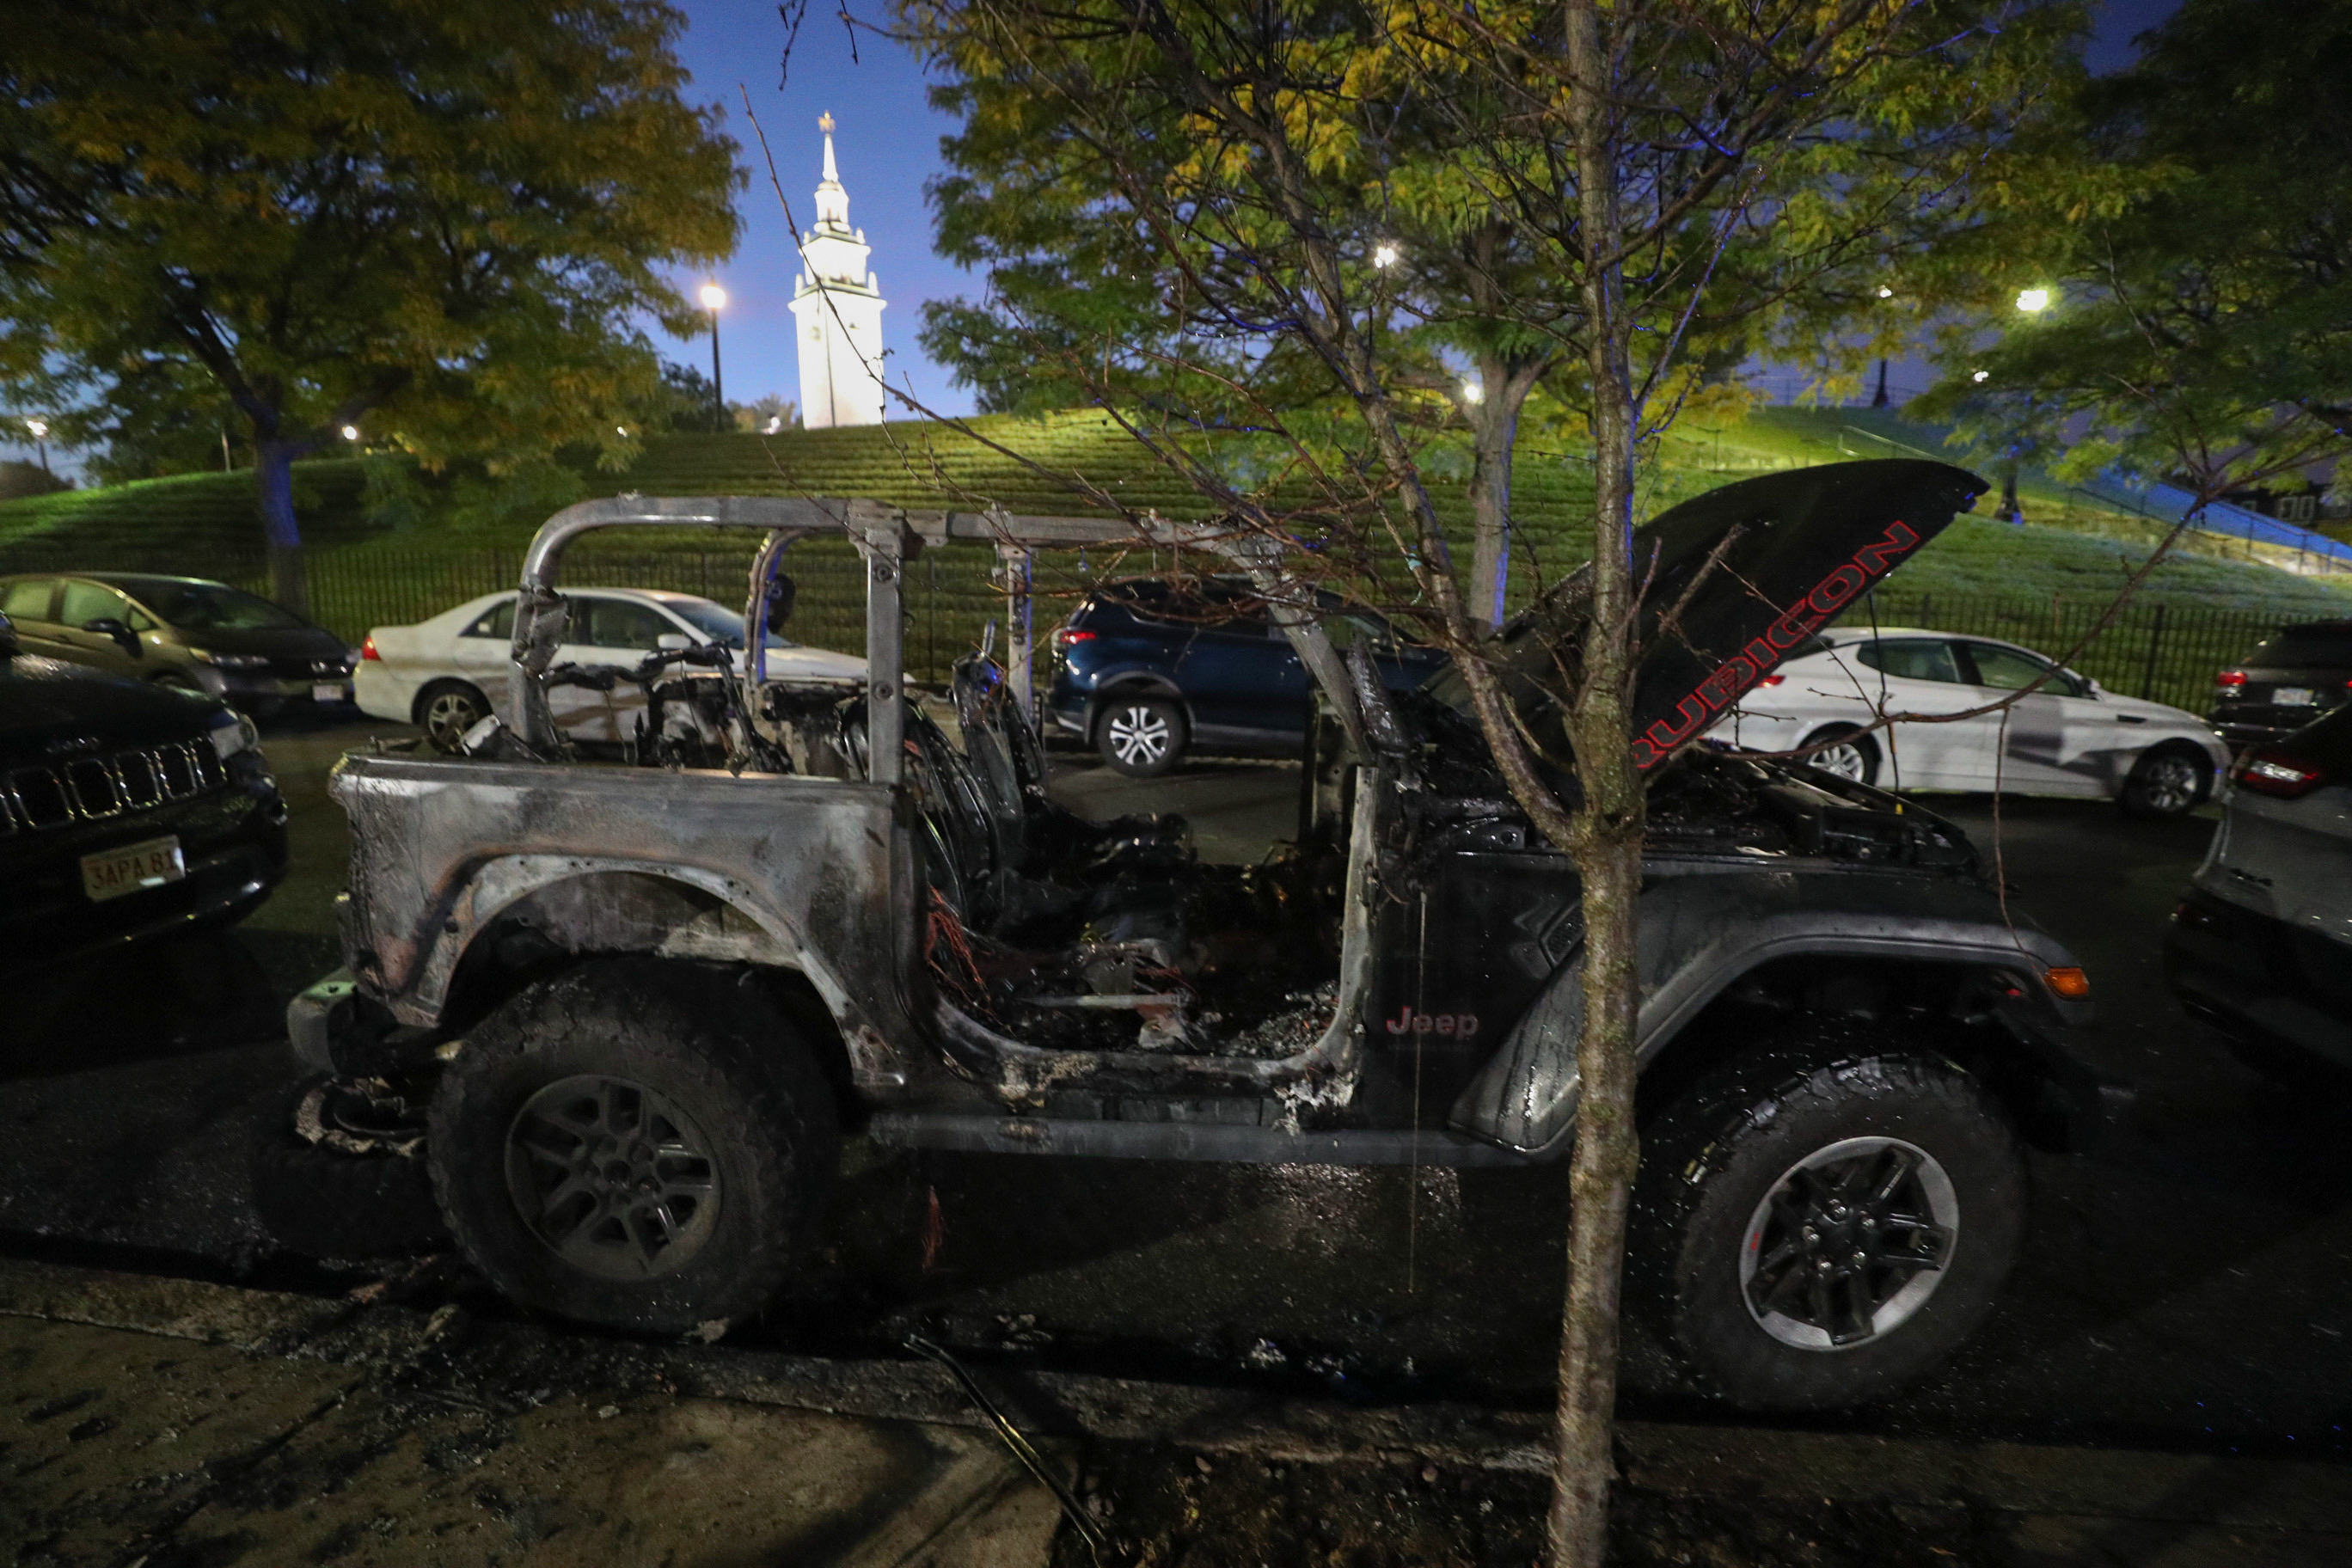 2 Badly-Burned Cars Found in South Boston